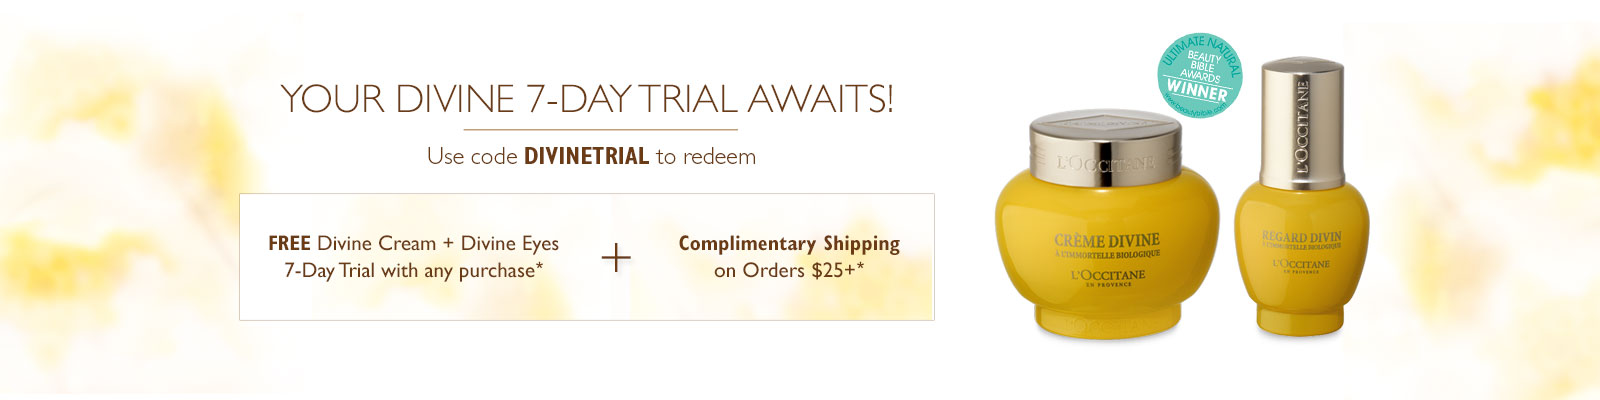 Your Divine 7-Day Trial Awaits!  Use code DIVINETRIAL to redeem.